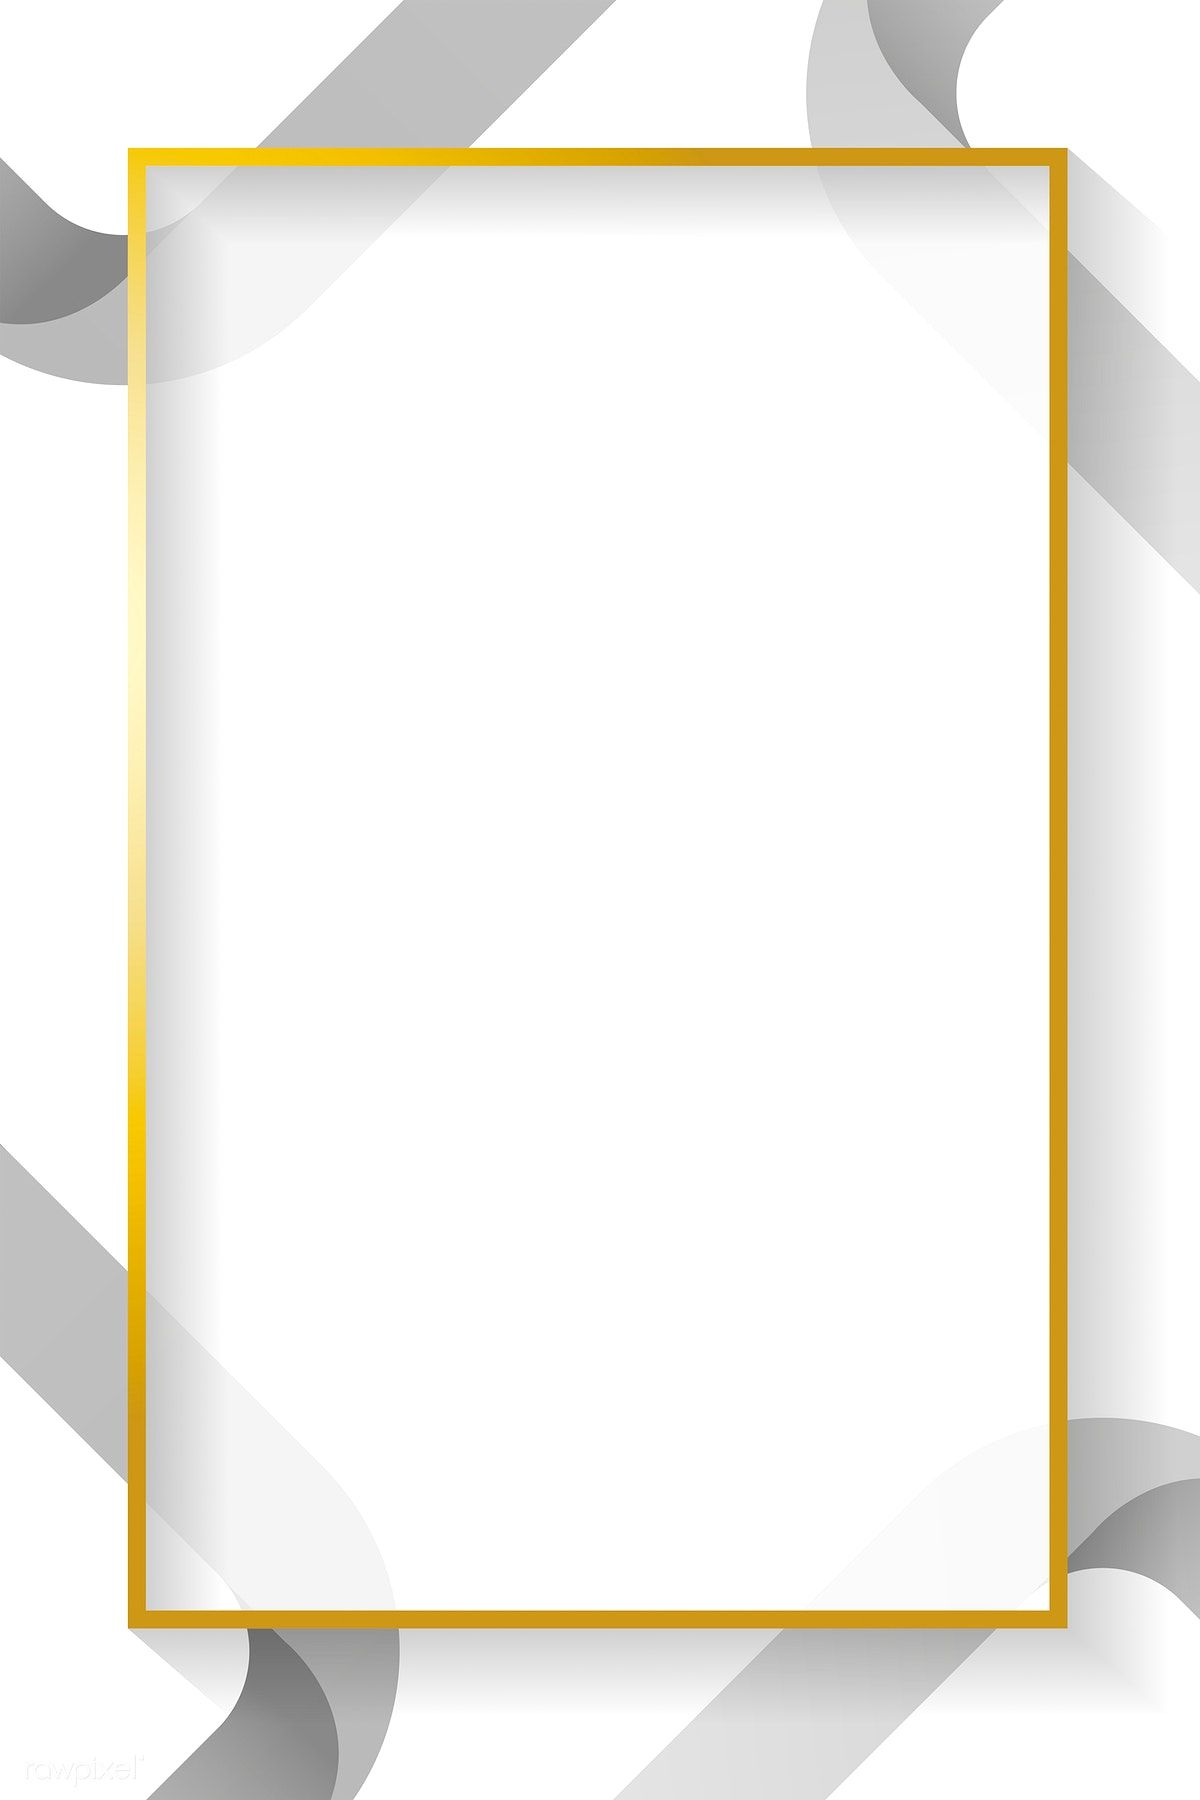 Download Premium Vector Of Blank Rectangle Abstract Frame Vector 1209573 Geometric Poster Design Powerpoint Background Design Poster Background Design